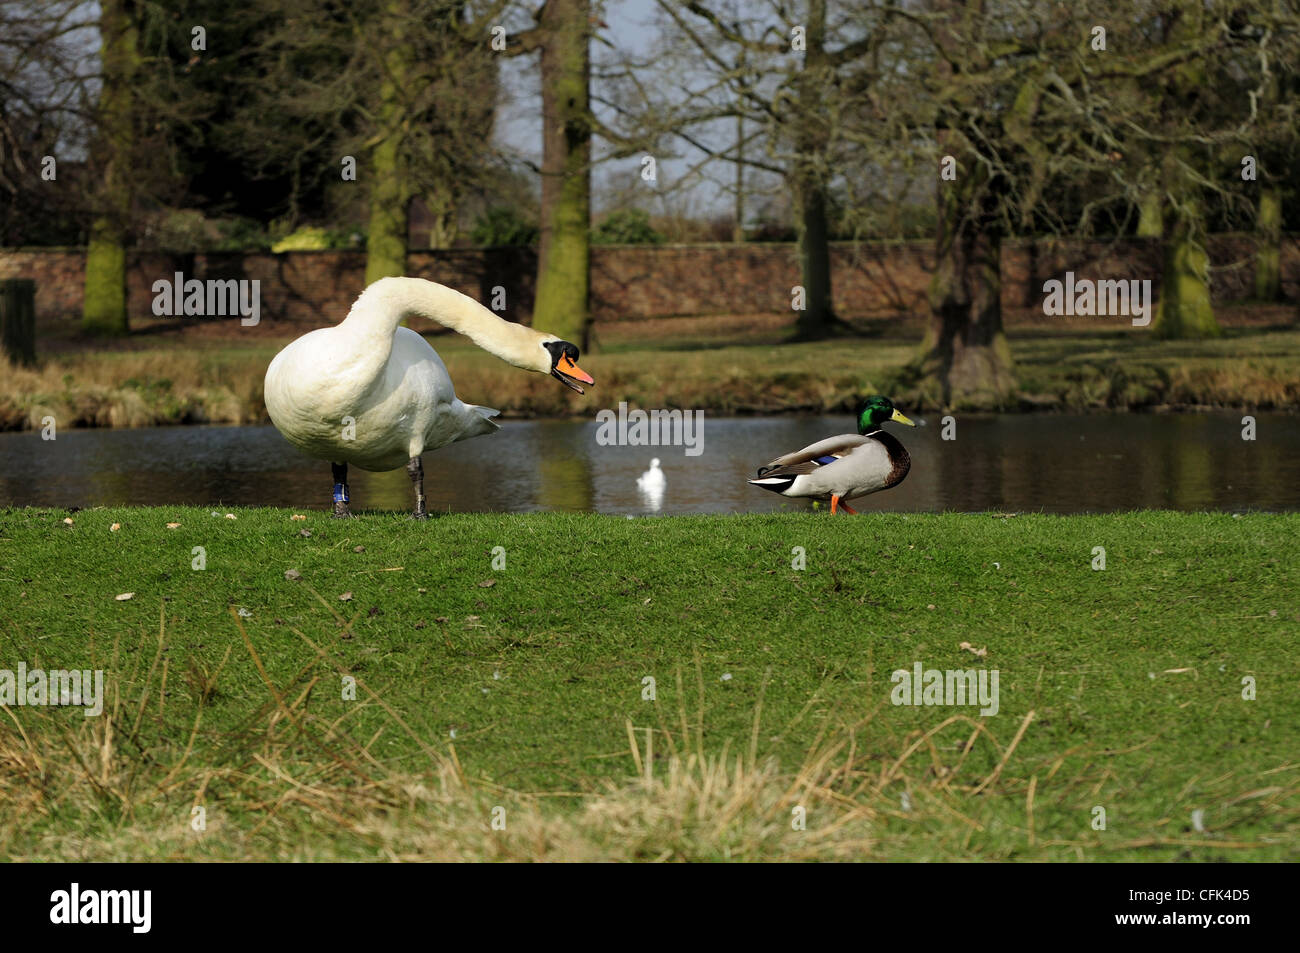 Mute swan at Dunham Massey hissing at male Mallard duck as it gets too close to scattered bread - Stock Image